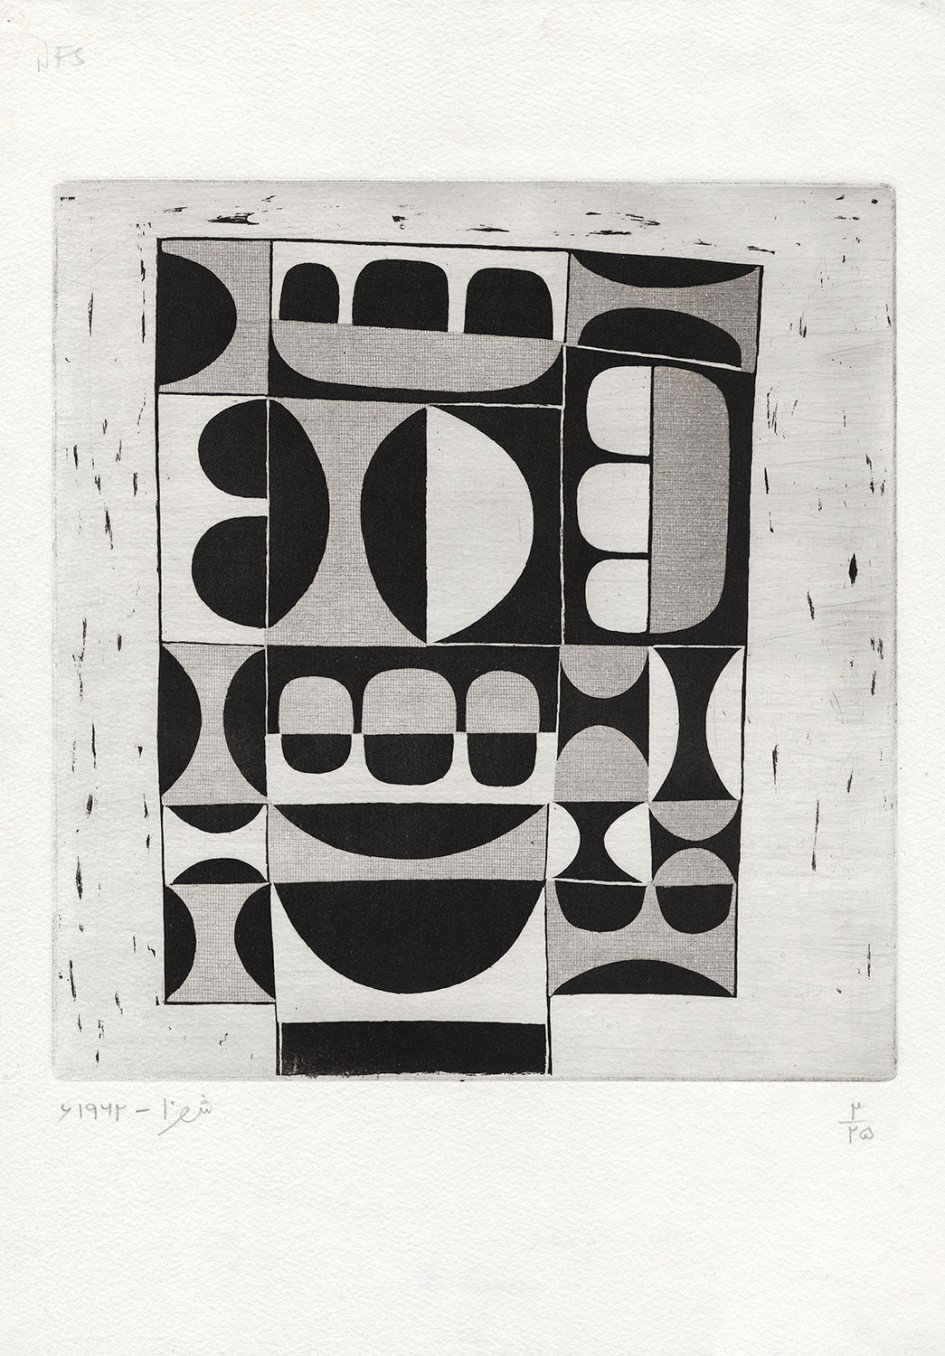 Anwar Jalal Shemza, The Gate Version B, 1970, Etching, 44.5 x 31.3 cm, 17 1/2 x 12 3/8 in, Framed: 48.4 x 46.5 cm, 19 1/8 x 18 3/8 in